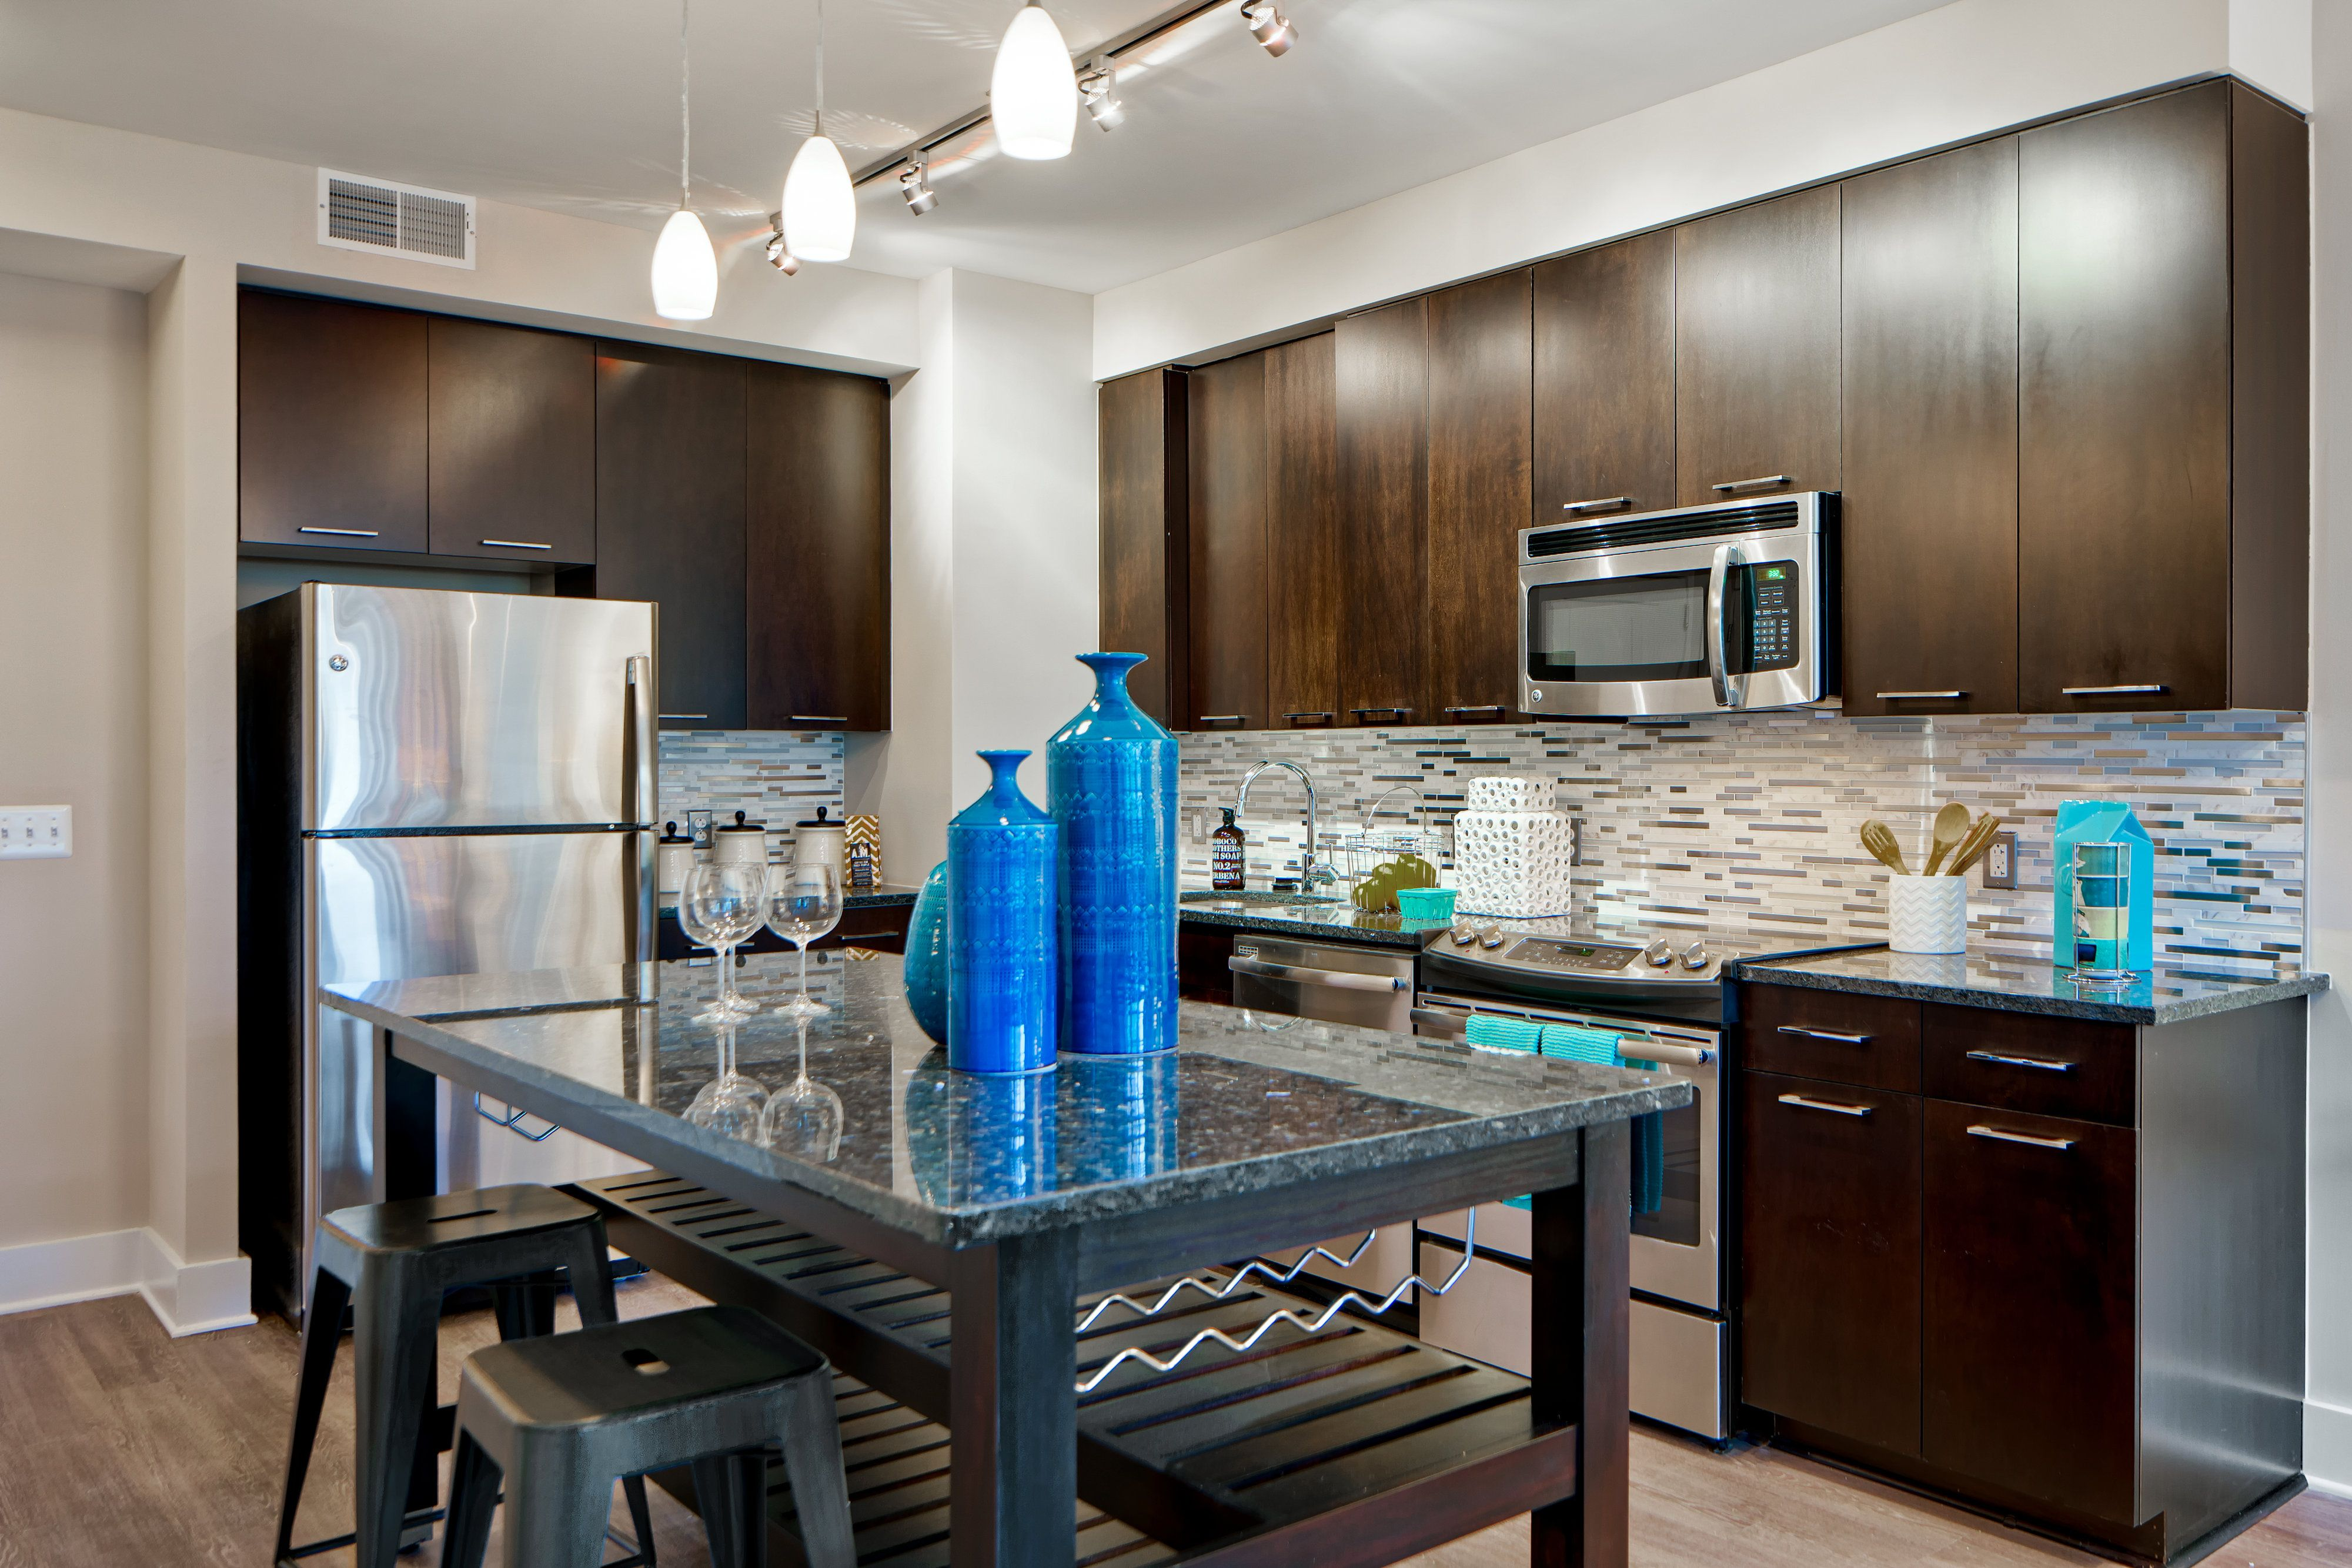 chic kitchen design in our one bedroom apartment home at